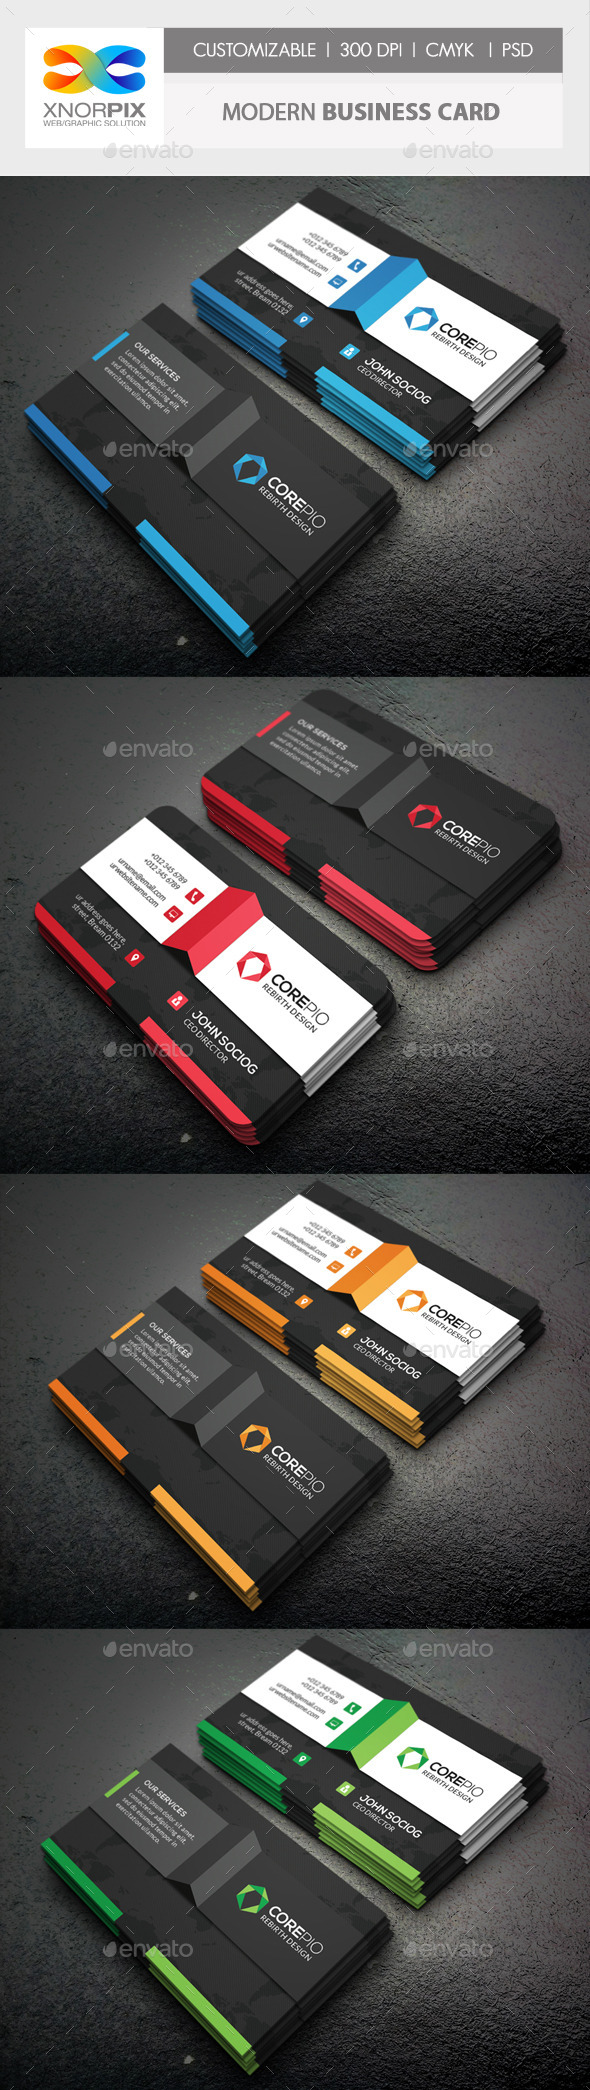 GraphicRiver Modern Business Card 10451419